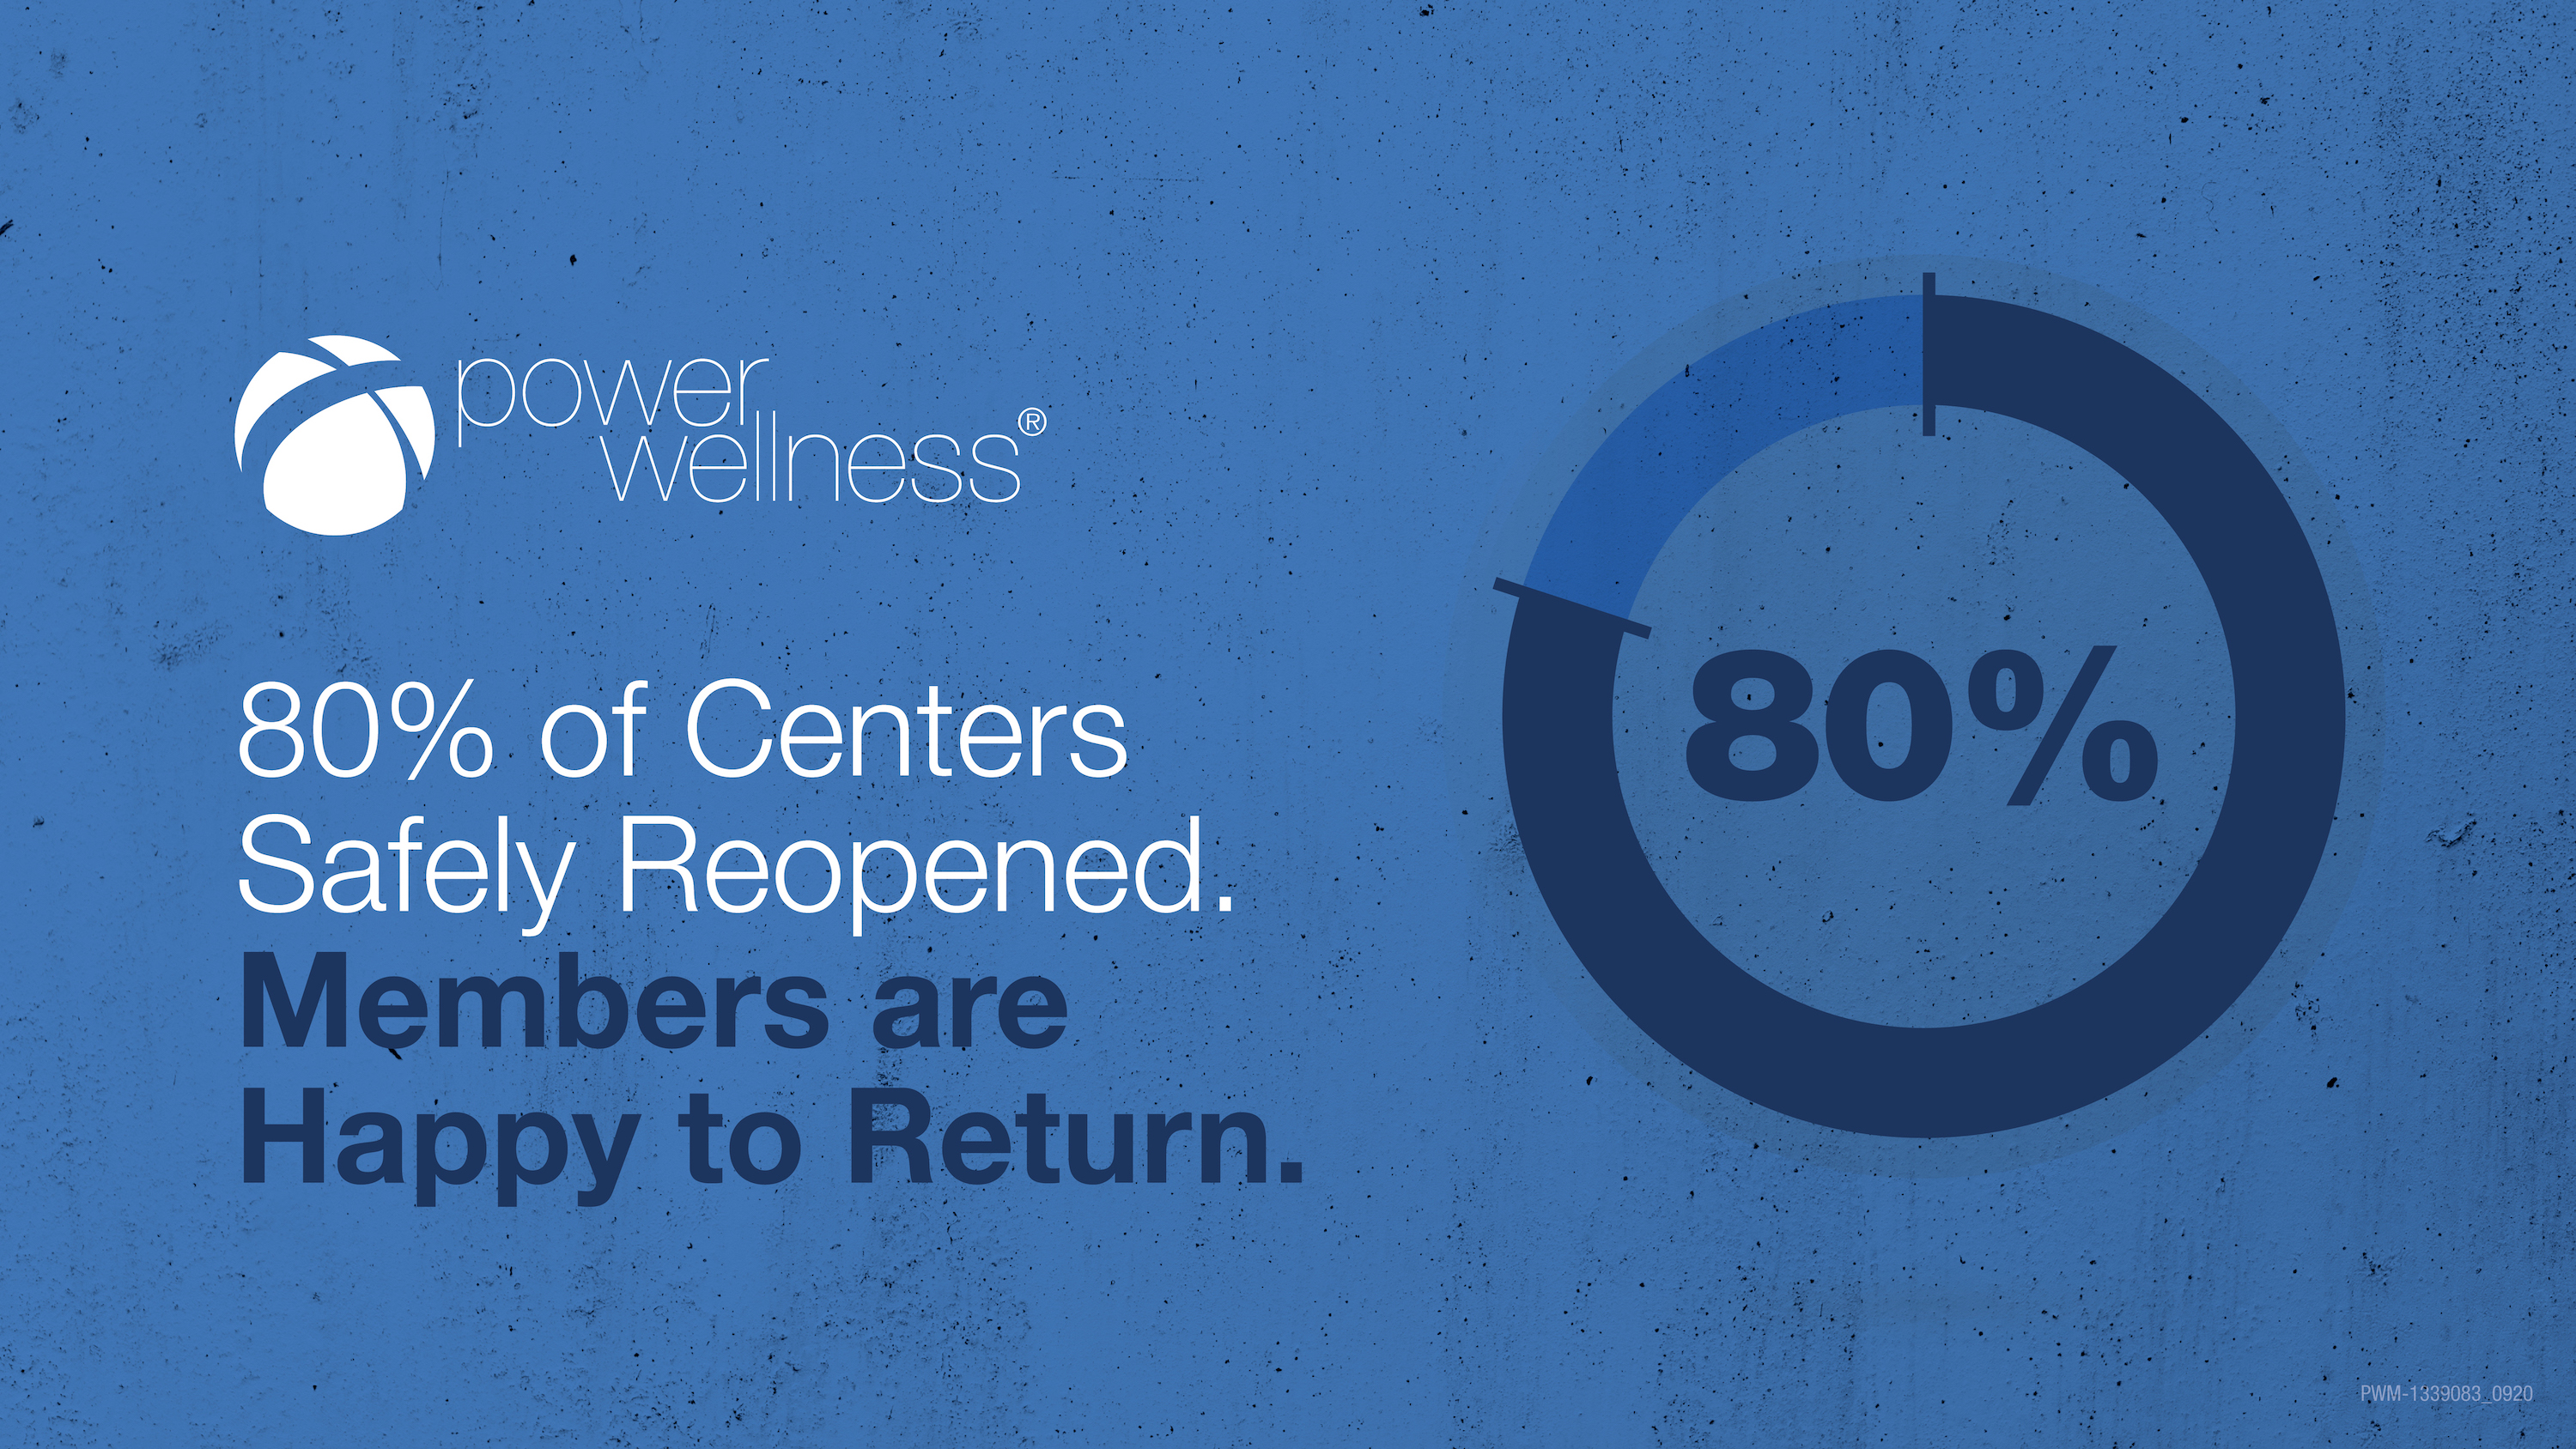 Power Wellness Fitness Centers Safely Reopen 80% of Their Centers